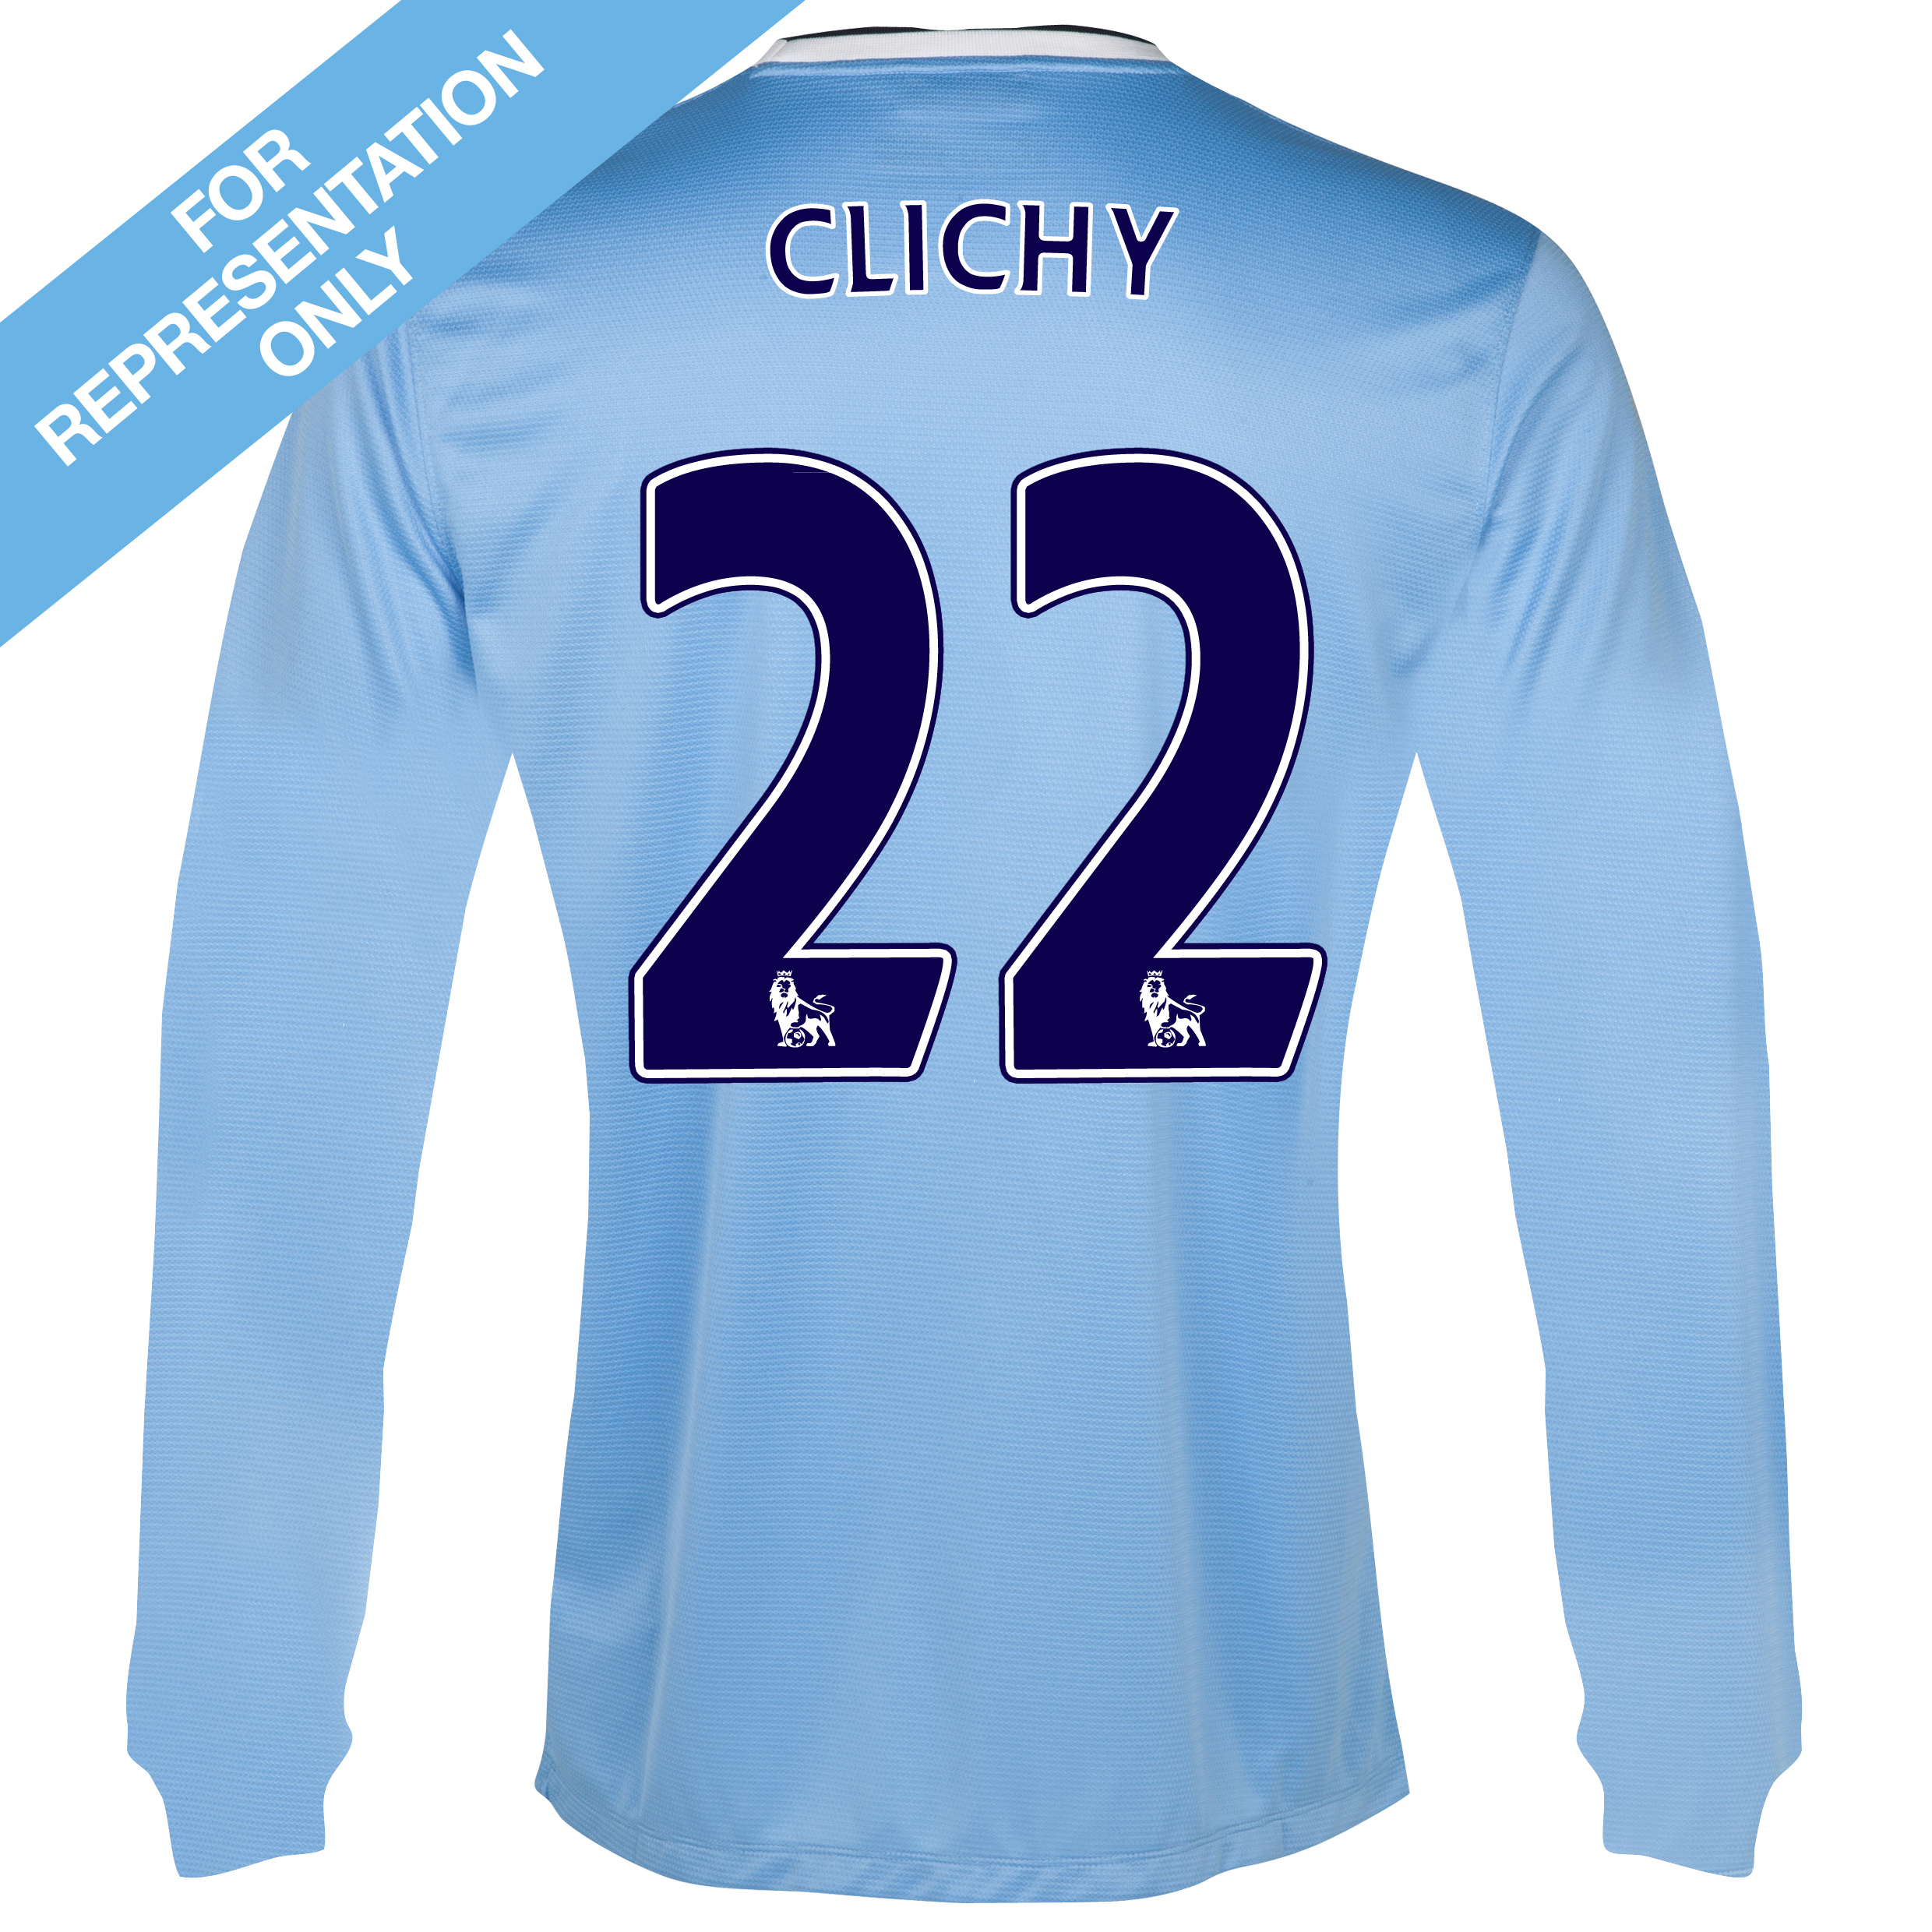 Manchester City Home Shirt 2013/14 - Long Sleeved with Clichy 22 printing